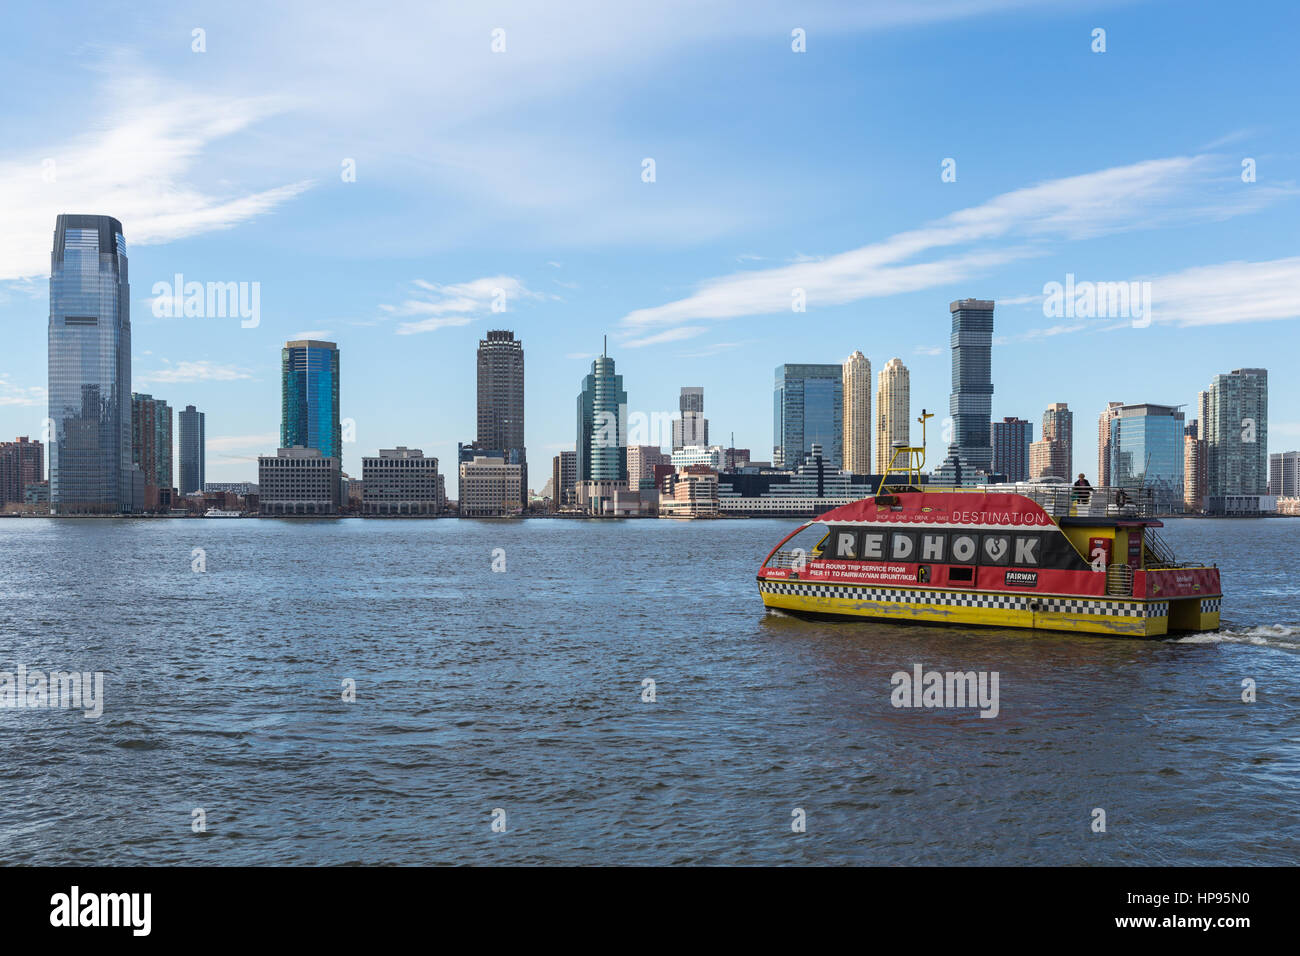 A NY Waterway ferry departs the World Financial Center Ferry Terminal, with the skyline of Jersey City in the background - Stock Image